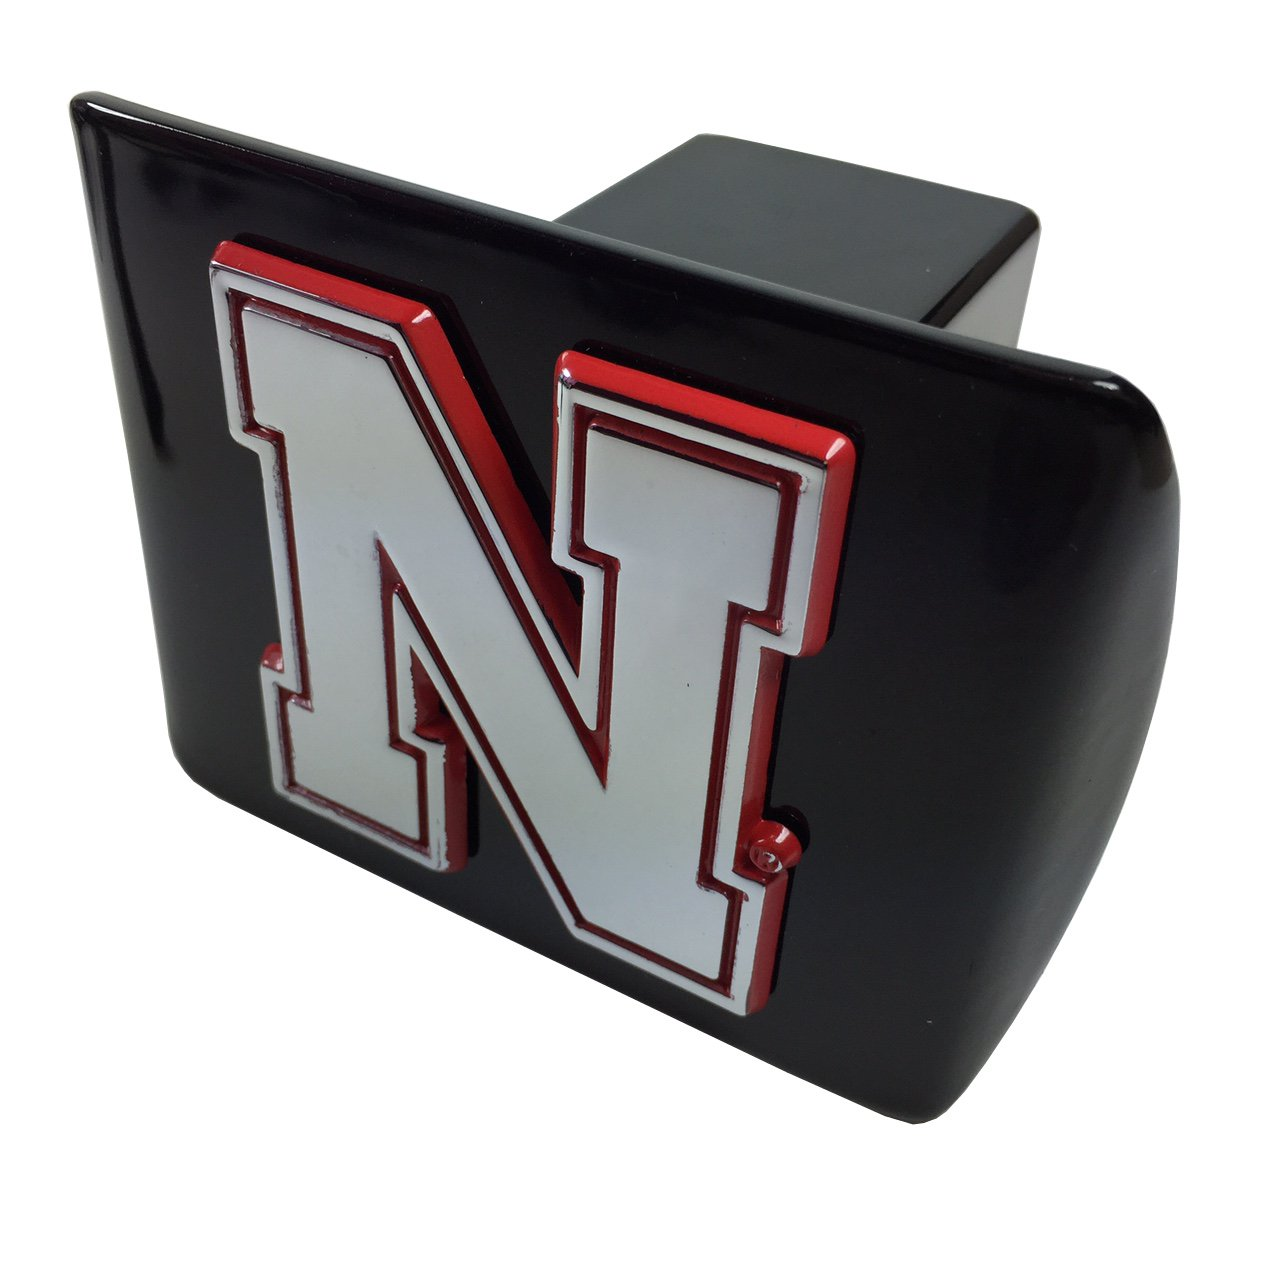 AMG University of Nebraska Metal Emblem (Chrome with red Trim) on Black Metal Hitch Cover (Iron N) by AMG